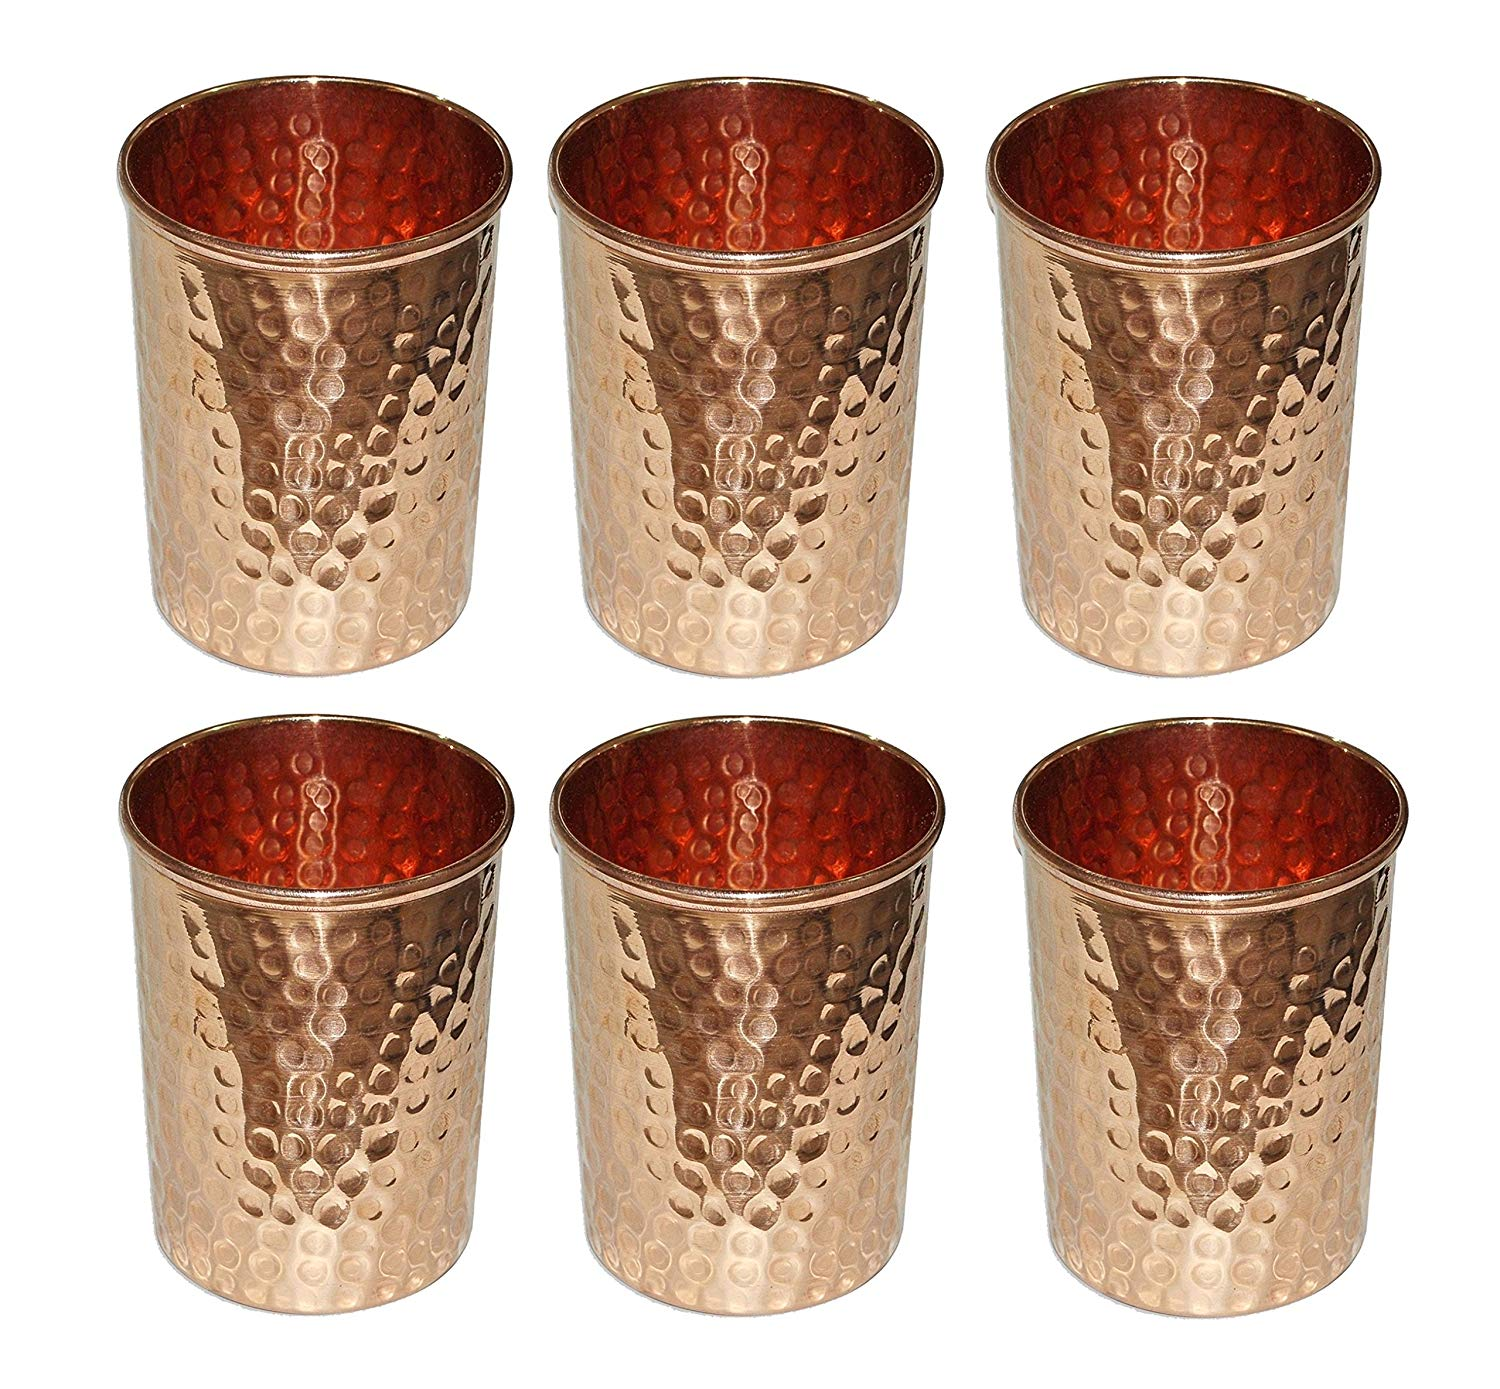 Set of 2 Pure Copper Drinkware Hammered Tumbler Water Glass Tableware Drinking Accessories for Ayurvedic Health Benefits